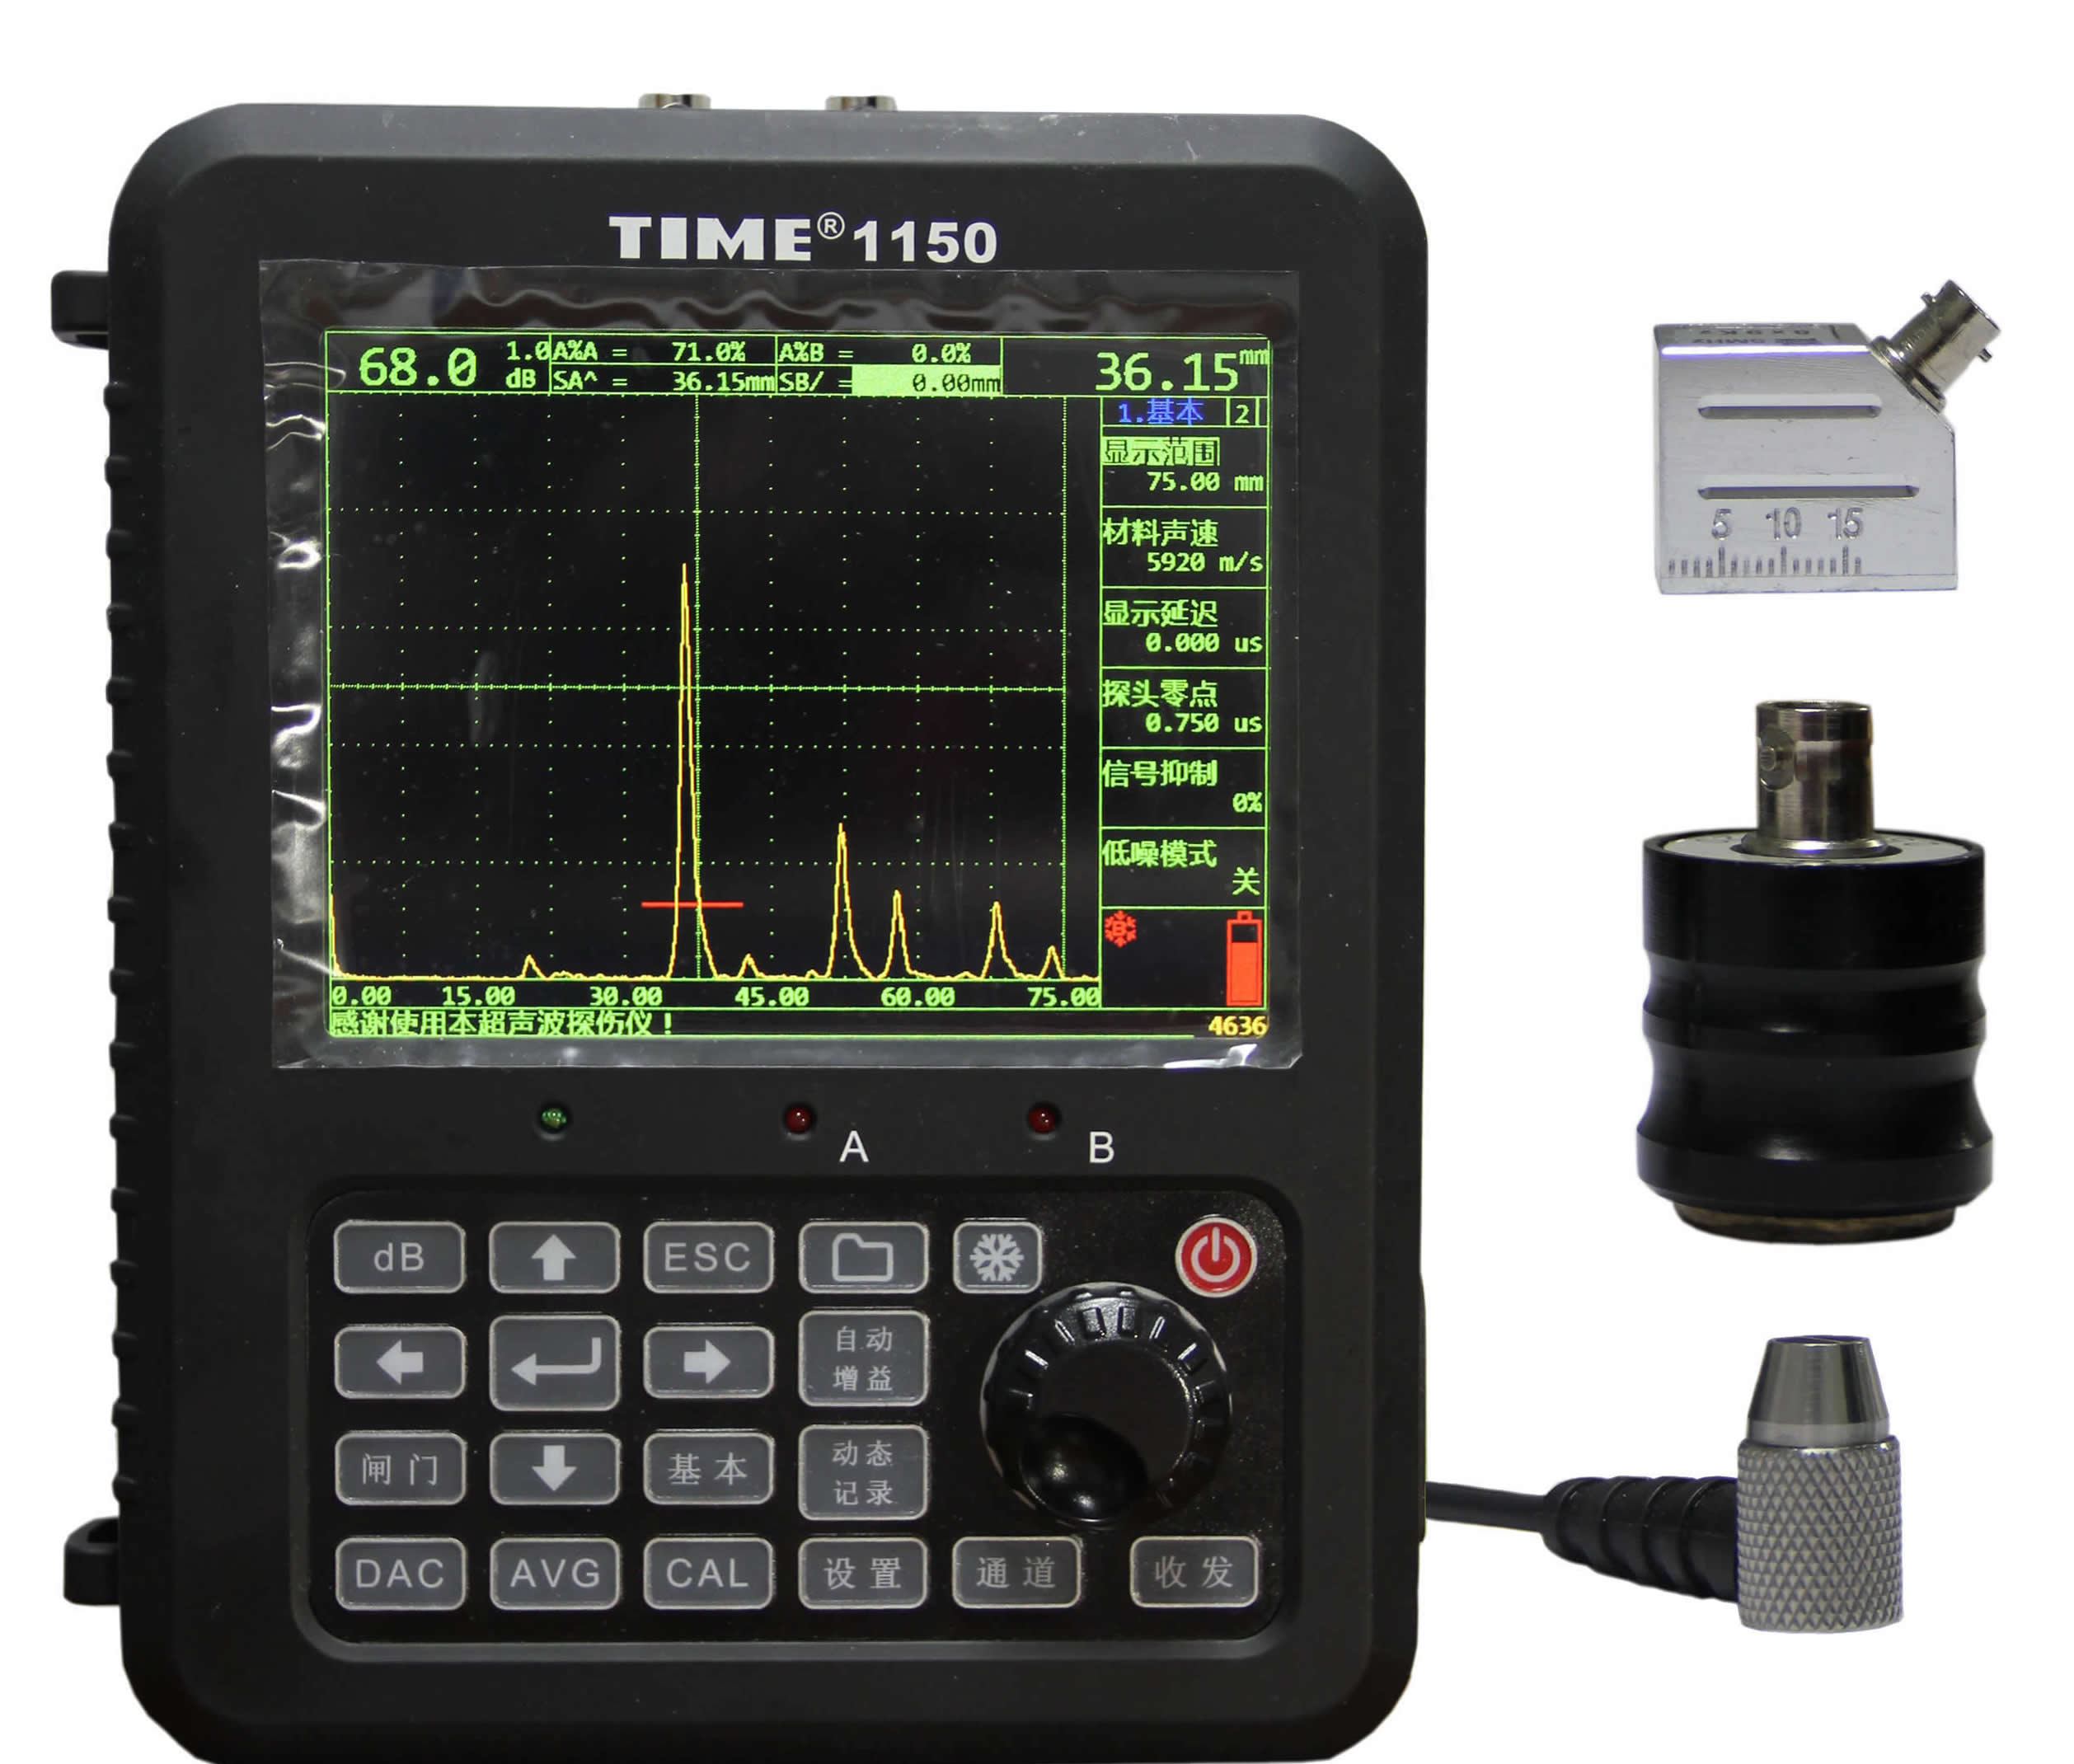 Ultrasonic Flaw Detector TIME®1150